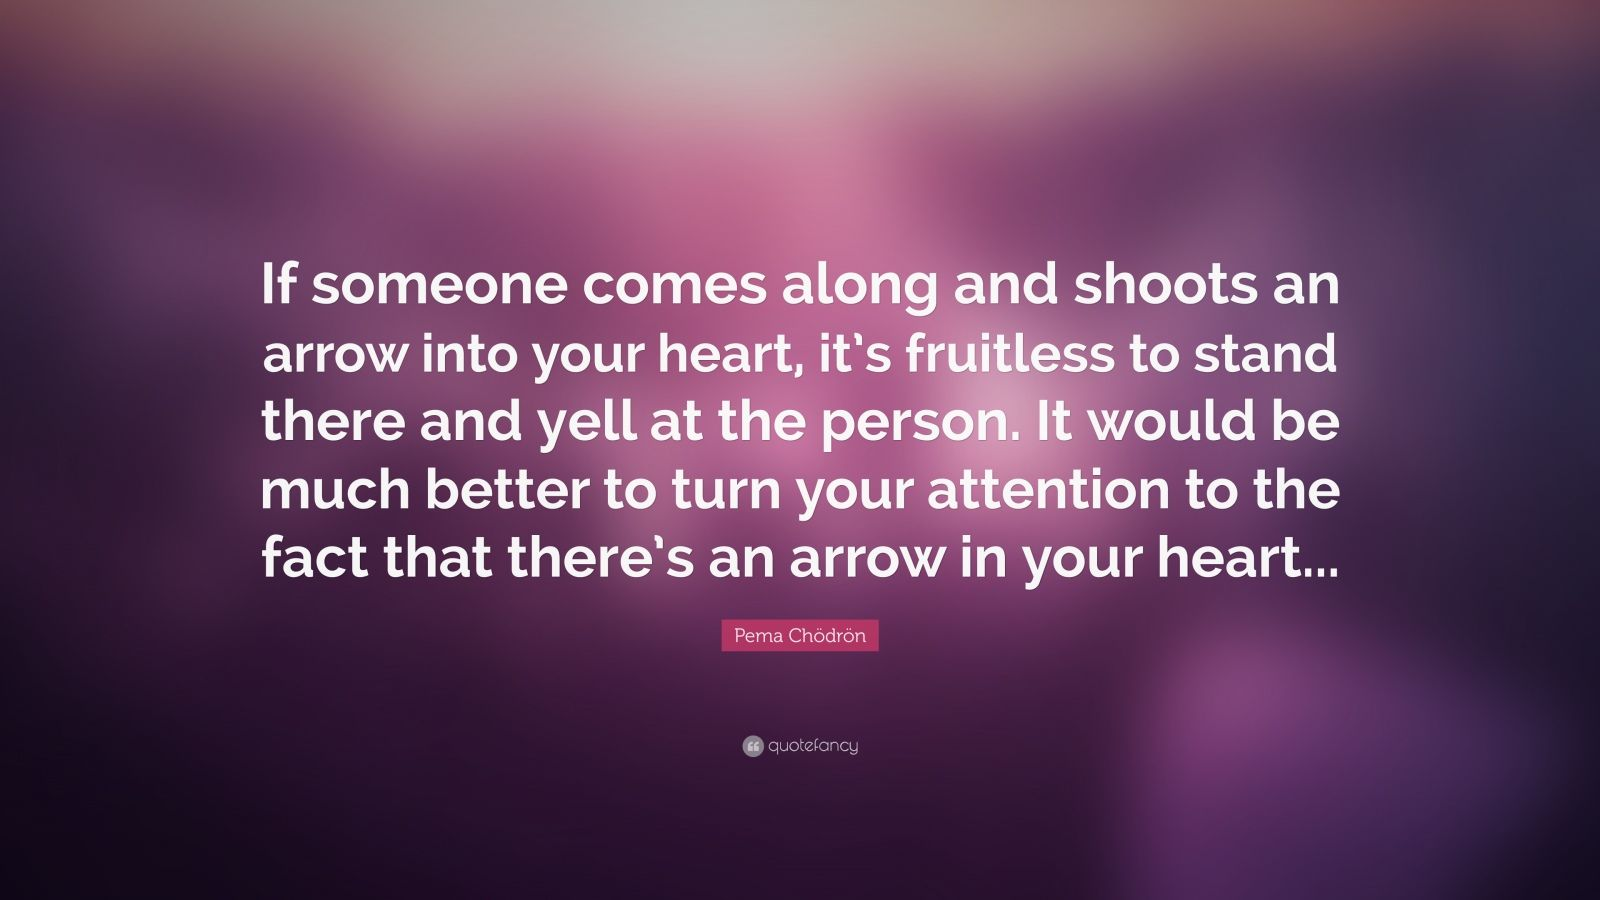 """Pema Chödrön Quote: """"If someone comes along and shoots an arrow into your heart, it's fruitless to stand there and yell at the person. It would be much better to turn your attention to the fact that there's an arrow in your heart..."""""""